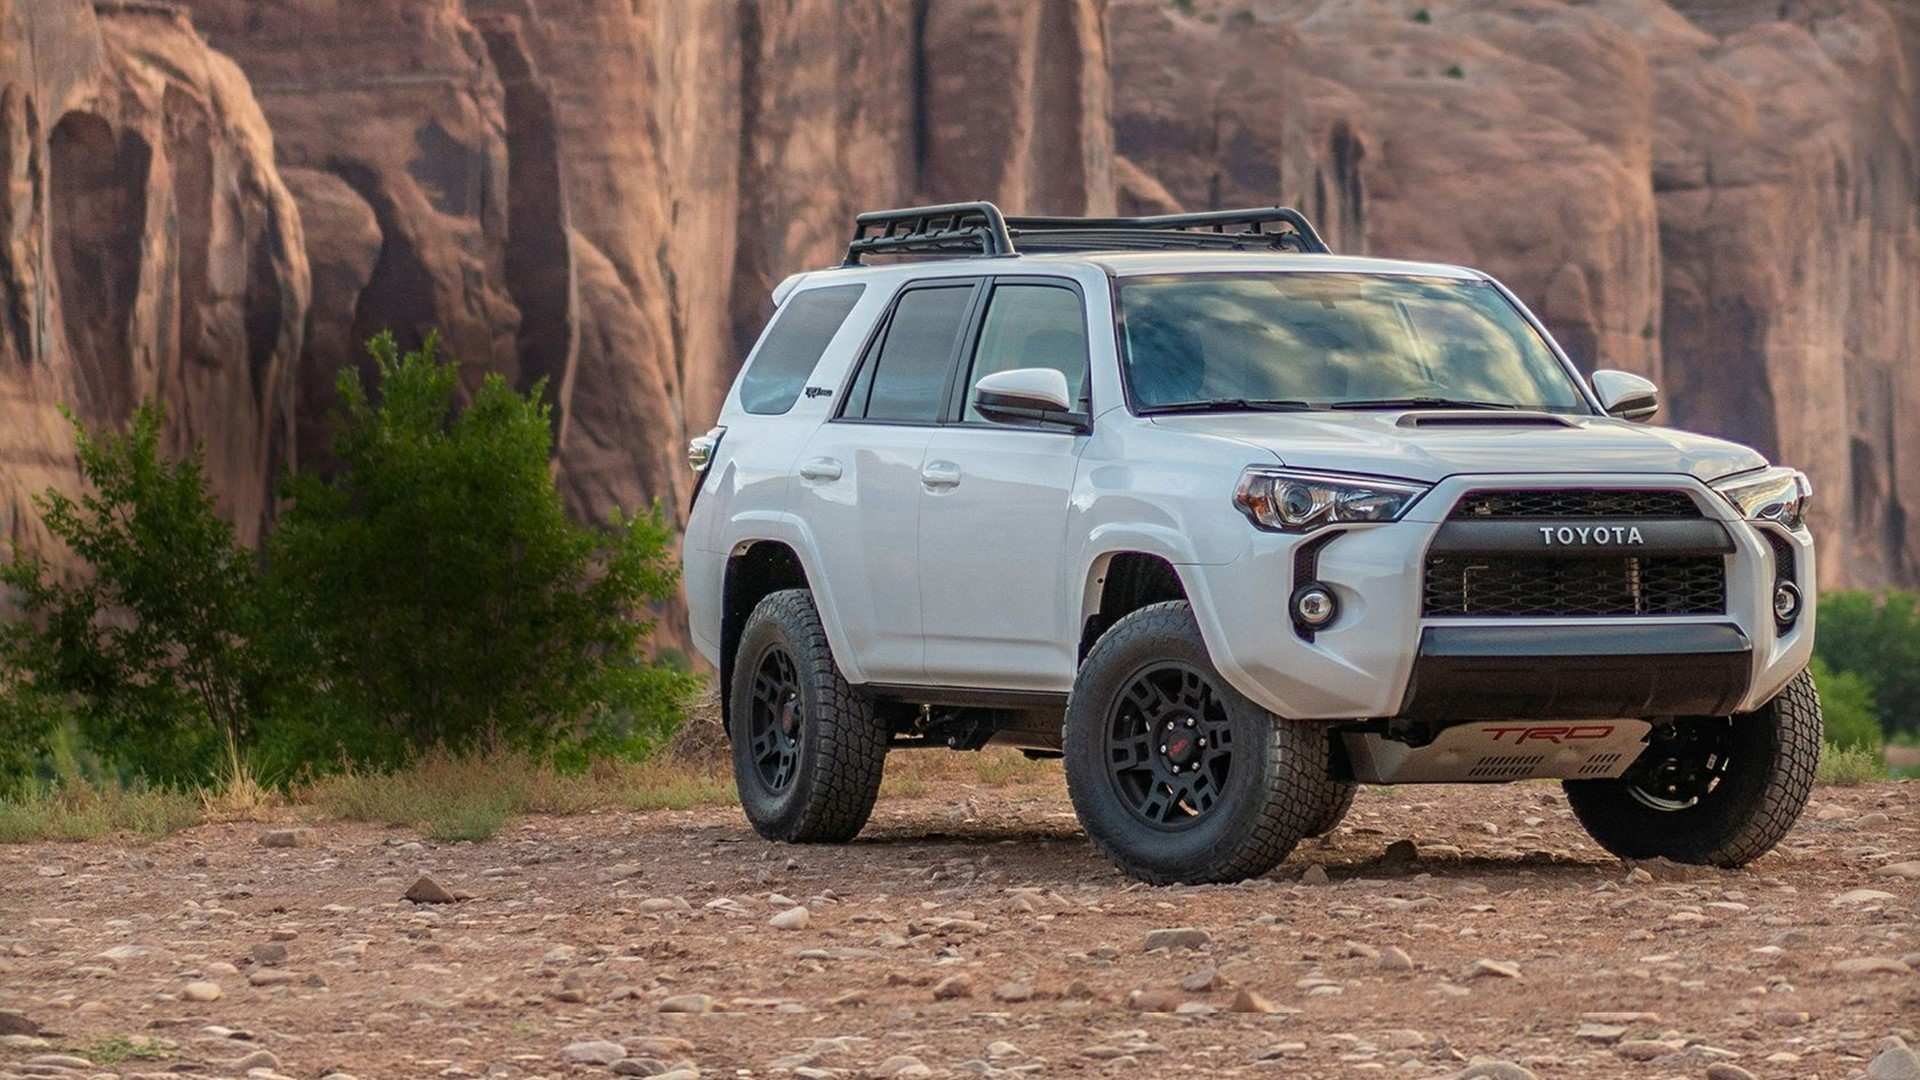 80 All New Toyota 2019 Forerunner Release Date